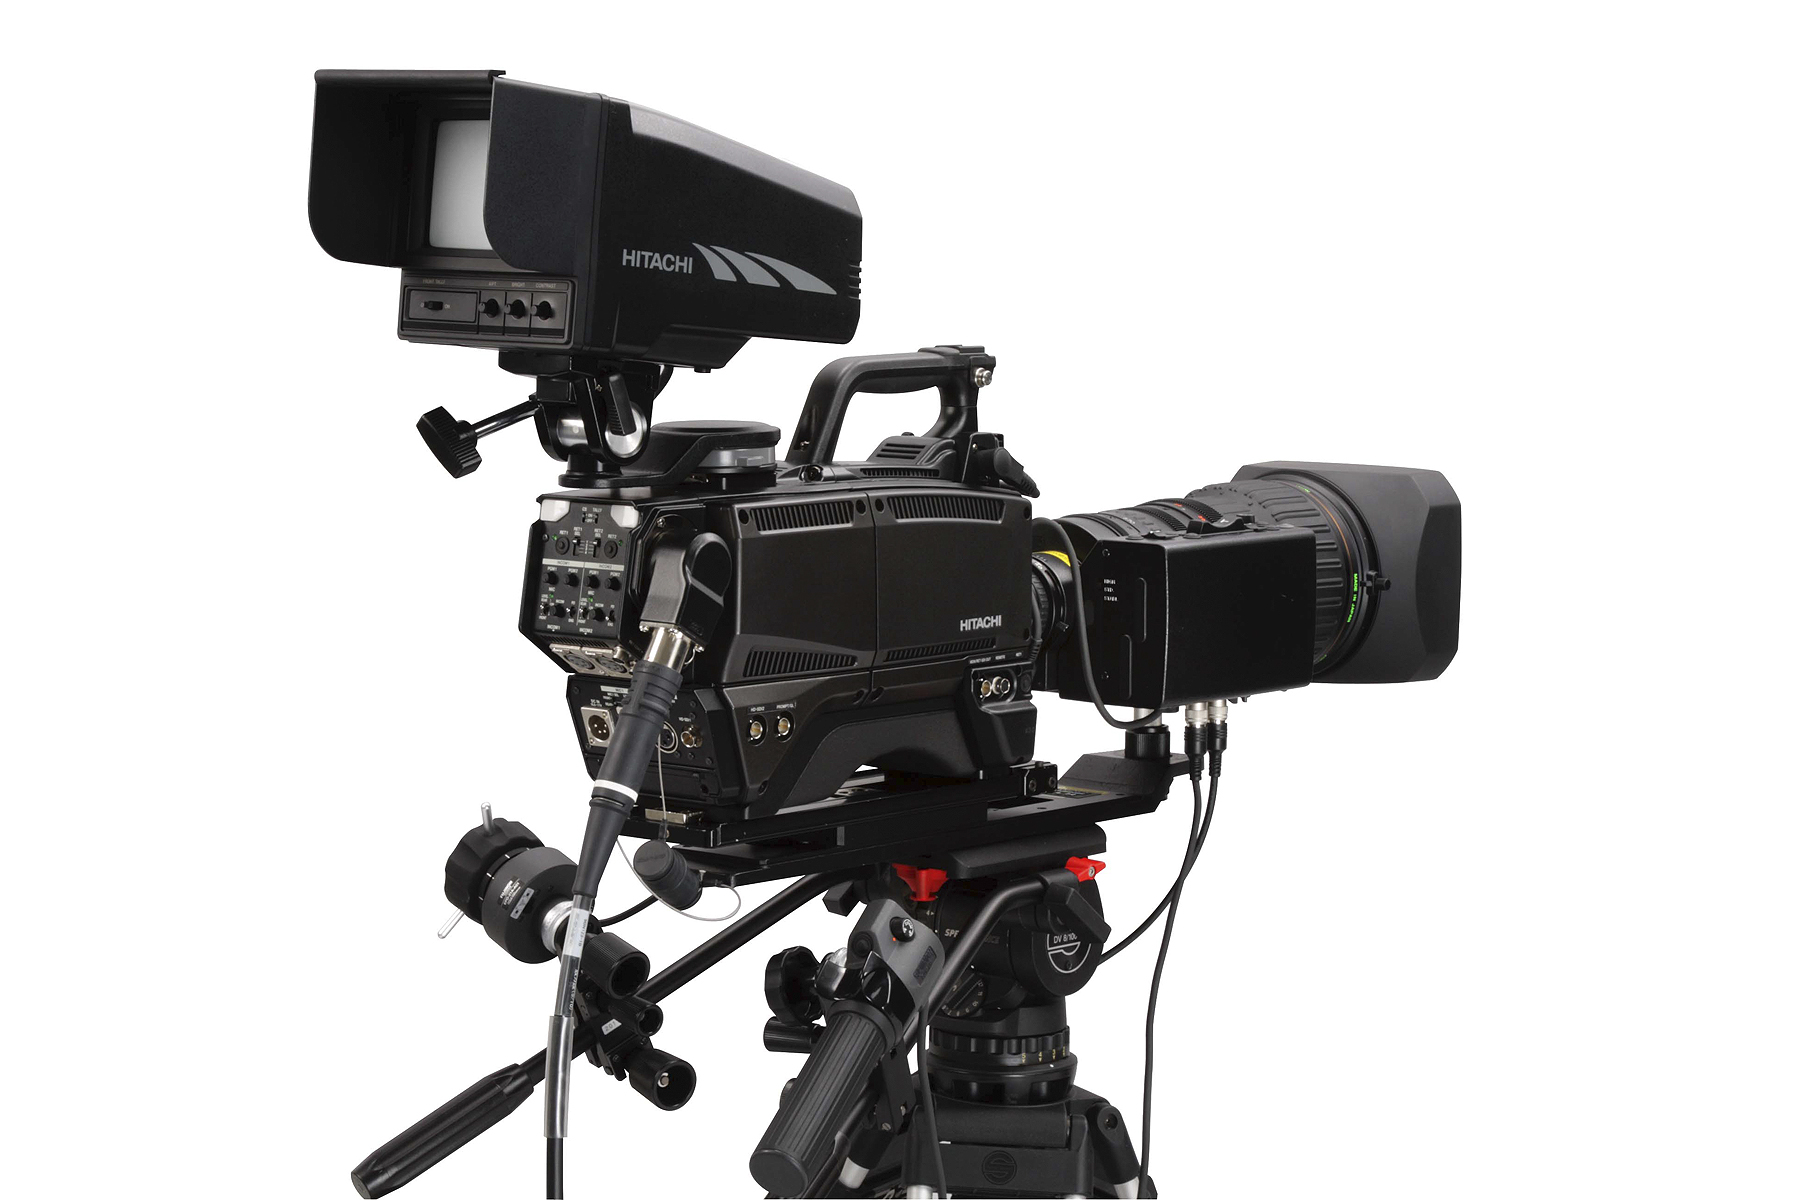 Studio cameras pipeline communications blog - Tv in camera ...